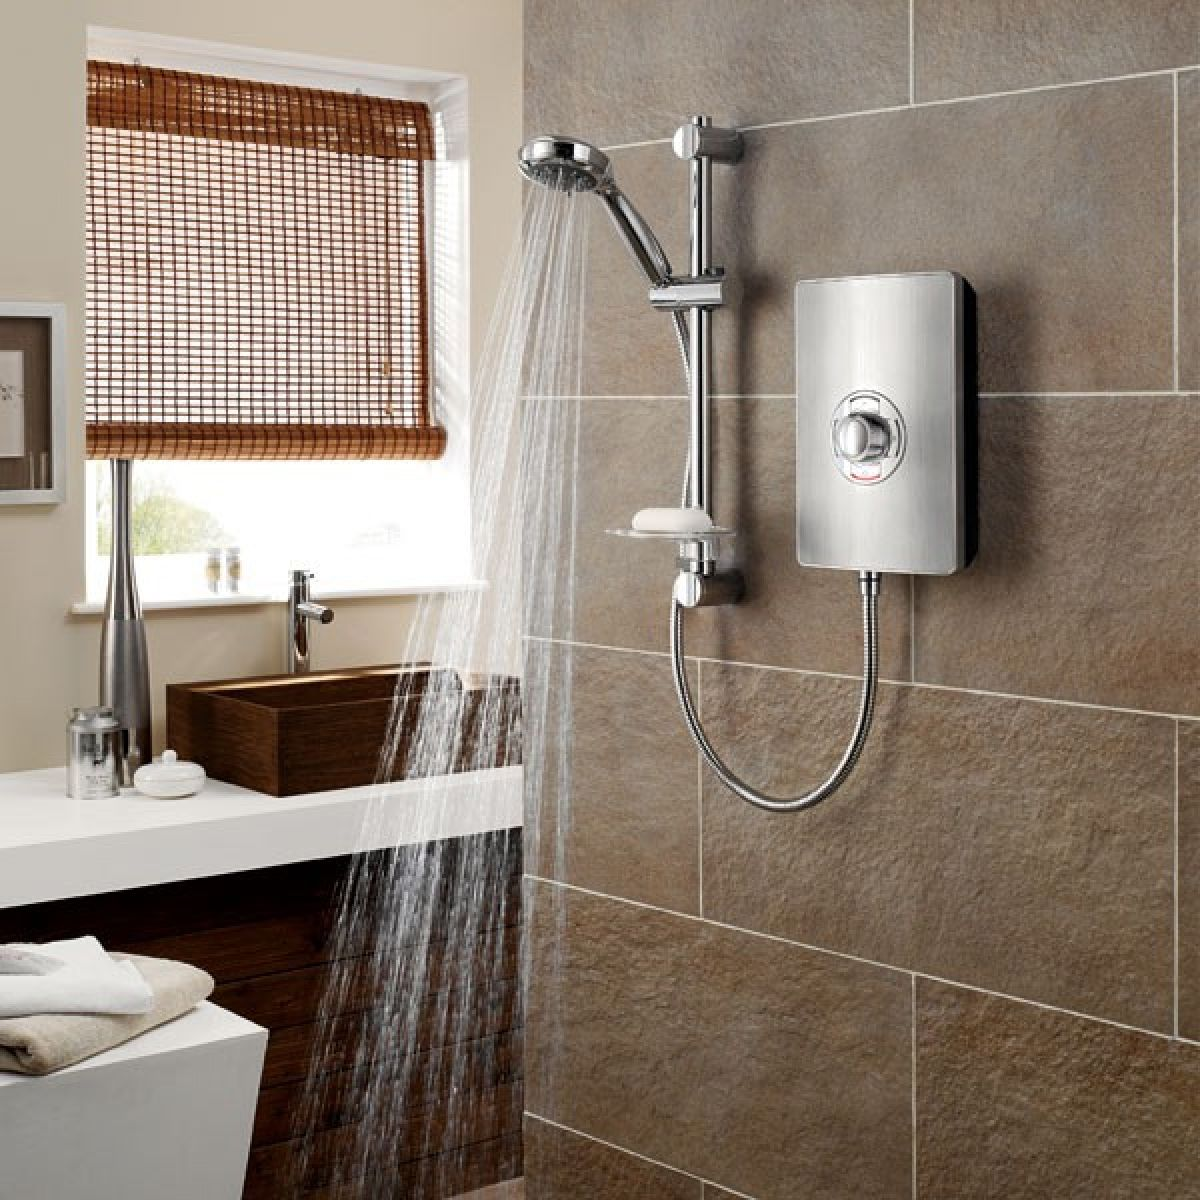 Triton Aspirante Brushed Steel Electric Shower in Situation